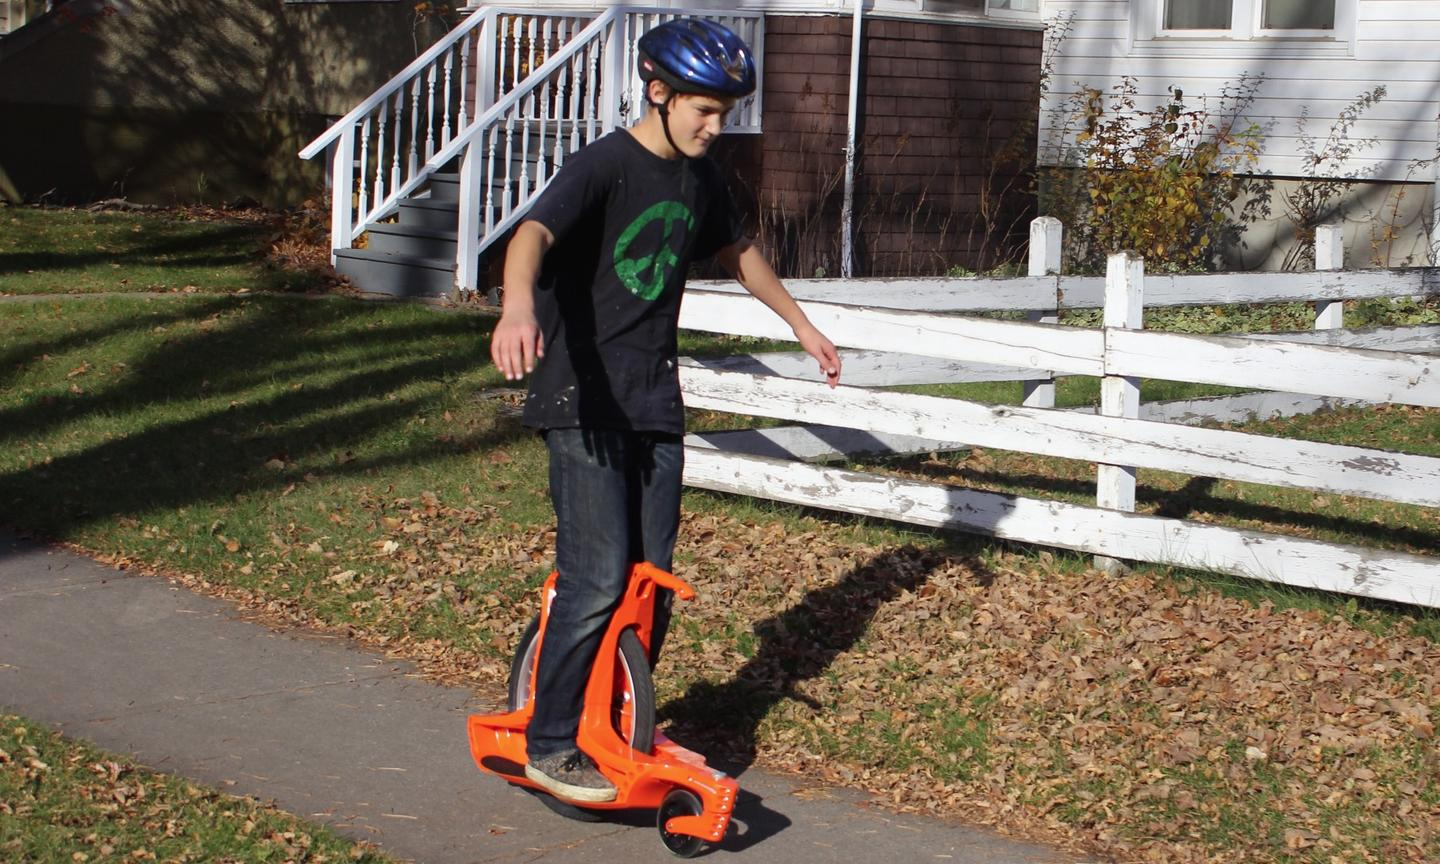 The Gauswheel has a sturdy ABS body with a 20-inch bicycle-style wheel in the back, and a swiveling 6-inch polyurethane roller blade-like wheel in front